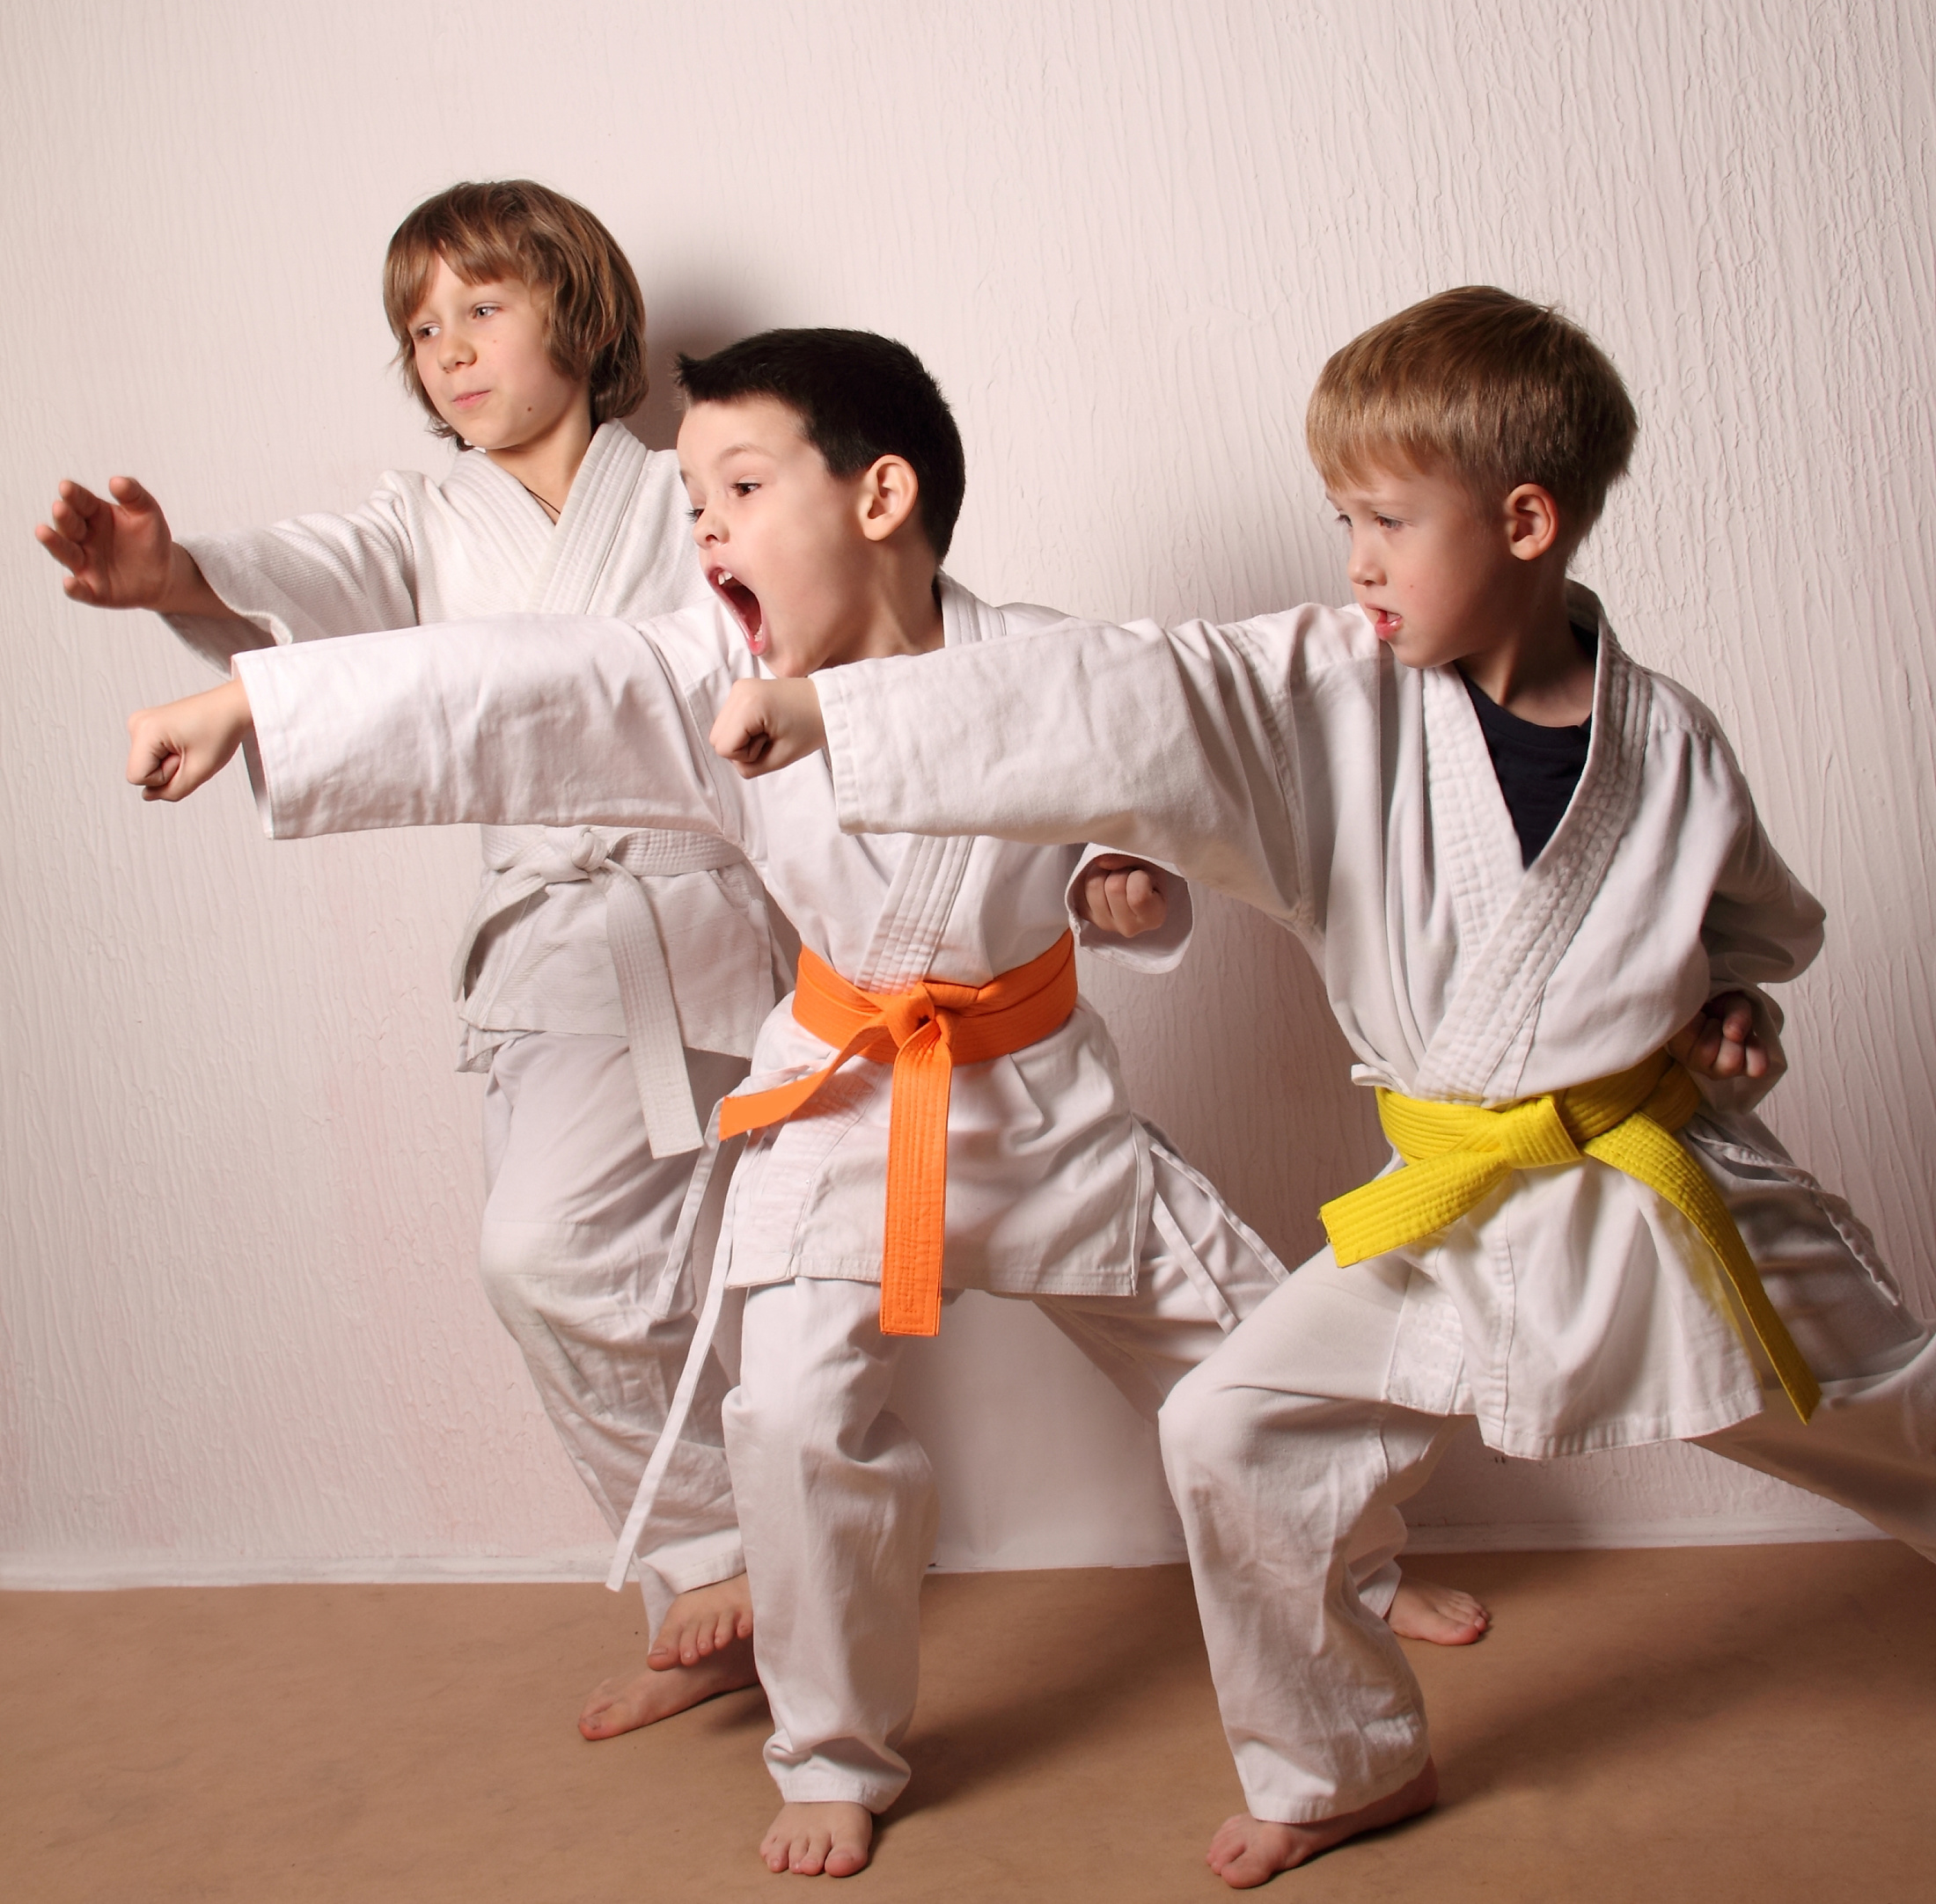 Kids Karate Program at Emerald Dragon Karate, Slatington